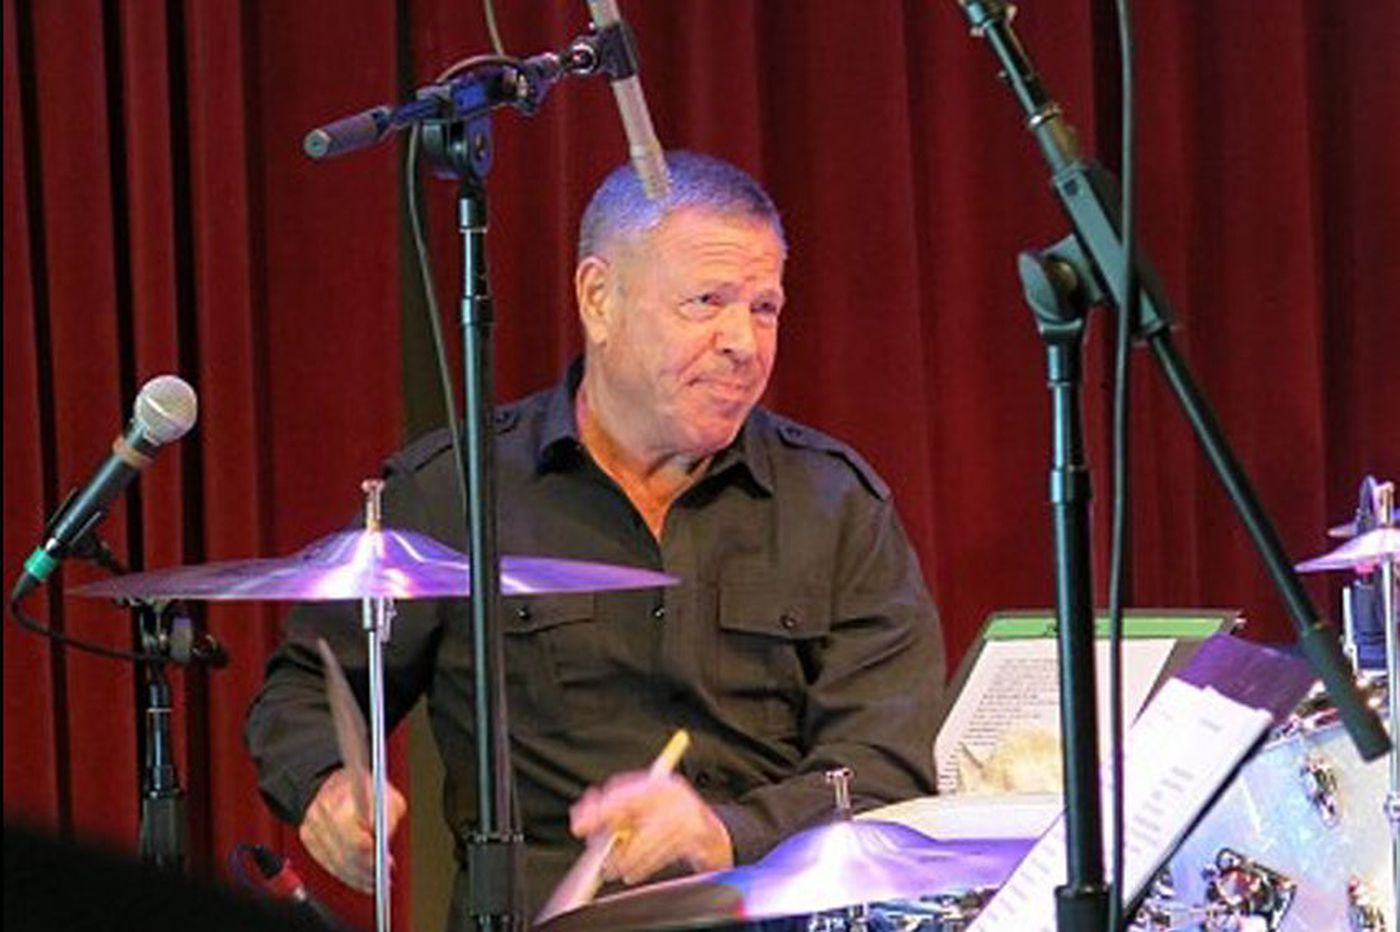 Philly drummer wrote his own ticket to success | Stu Bykofsky